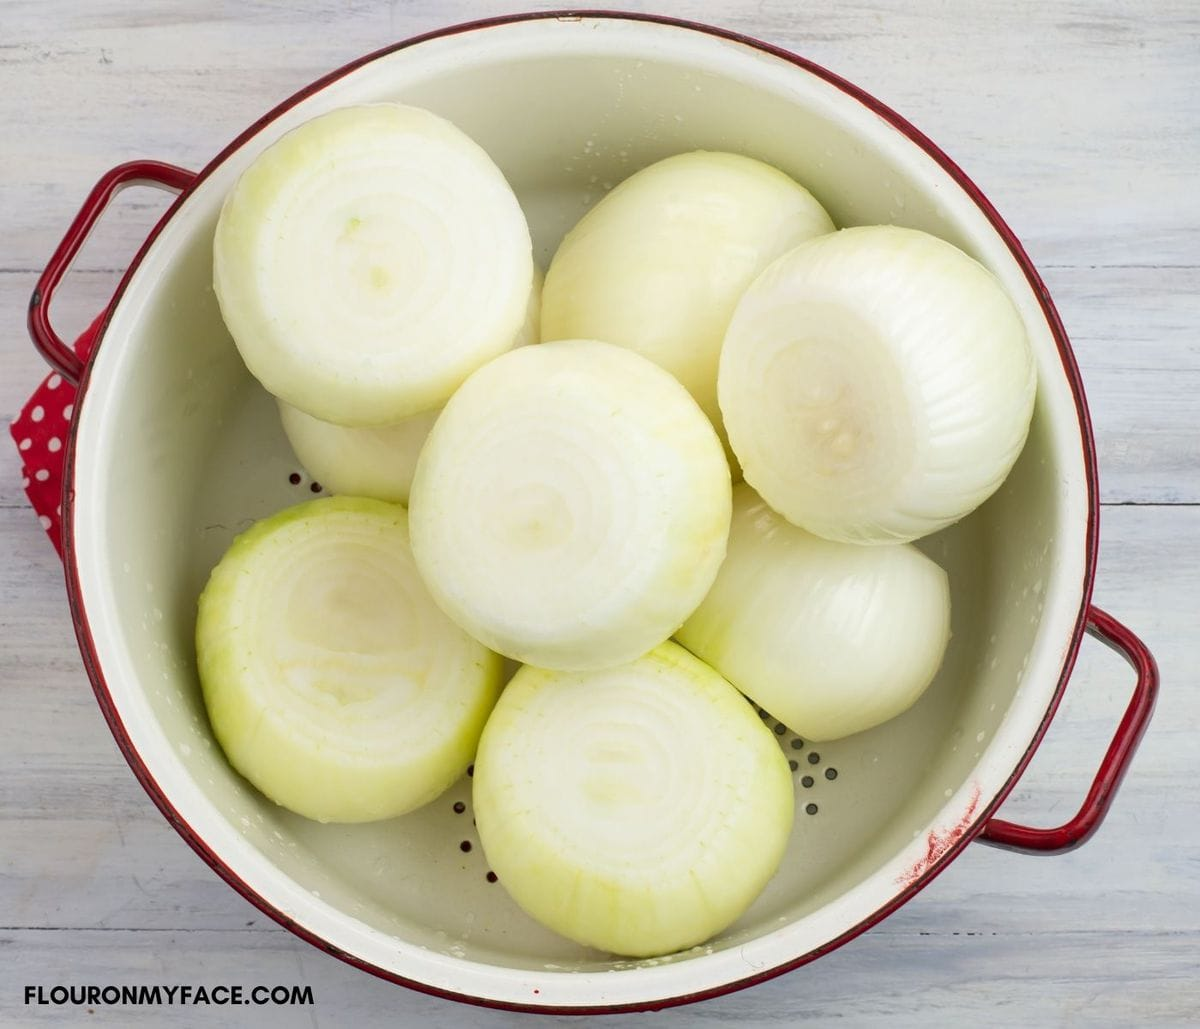 Large peeled white onions in a white enamel colander.